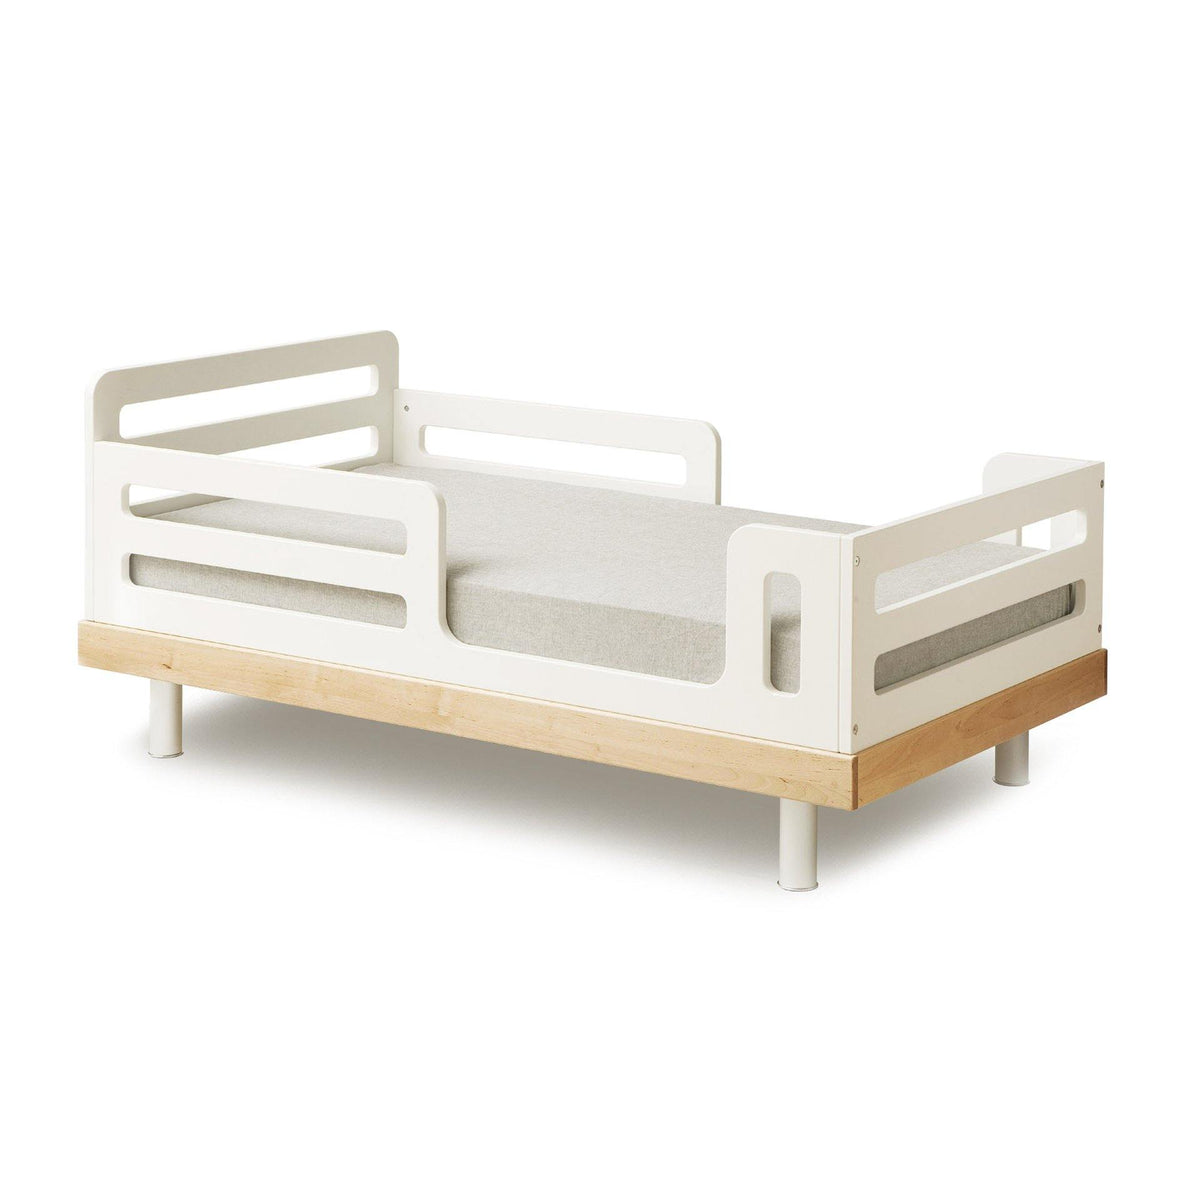 Shop Oeuf Classic Toddler Bed Online at Kiddie Country™️